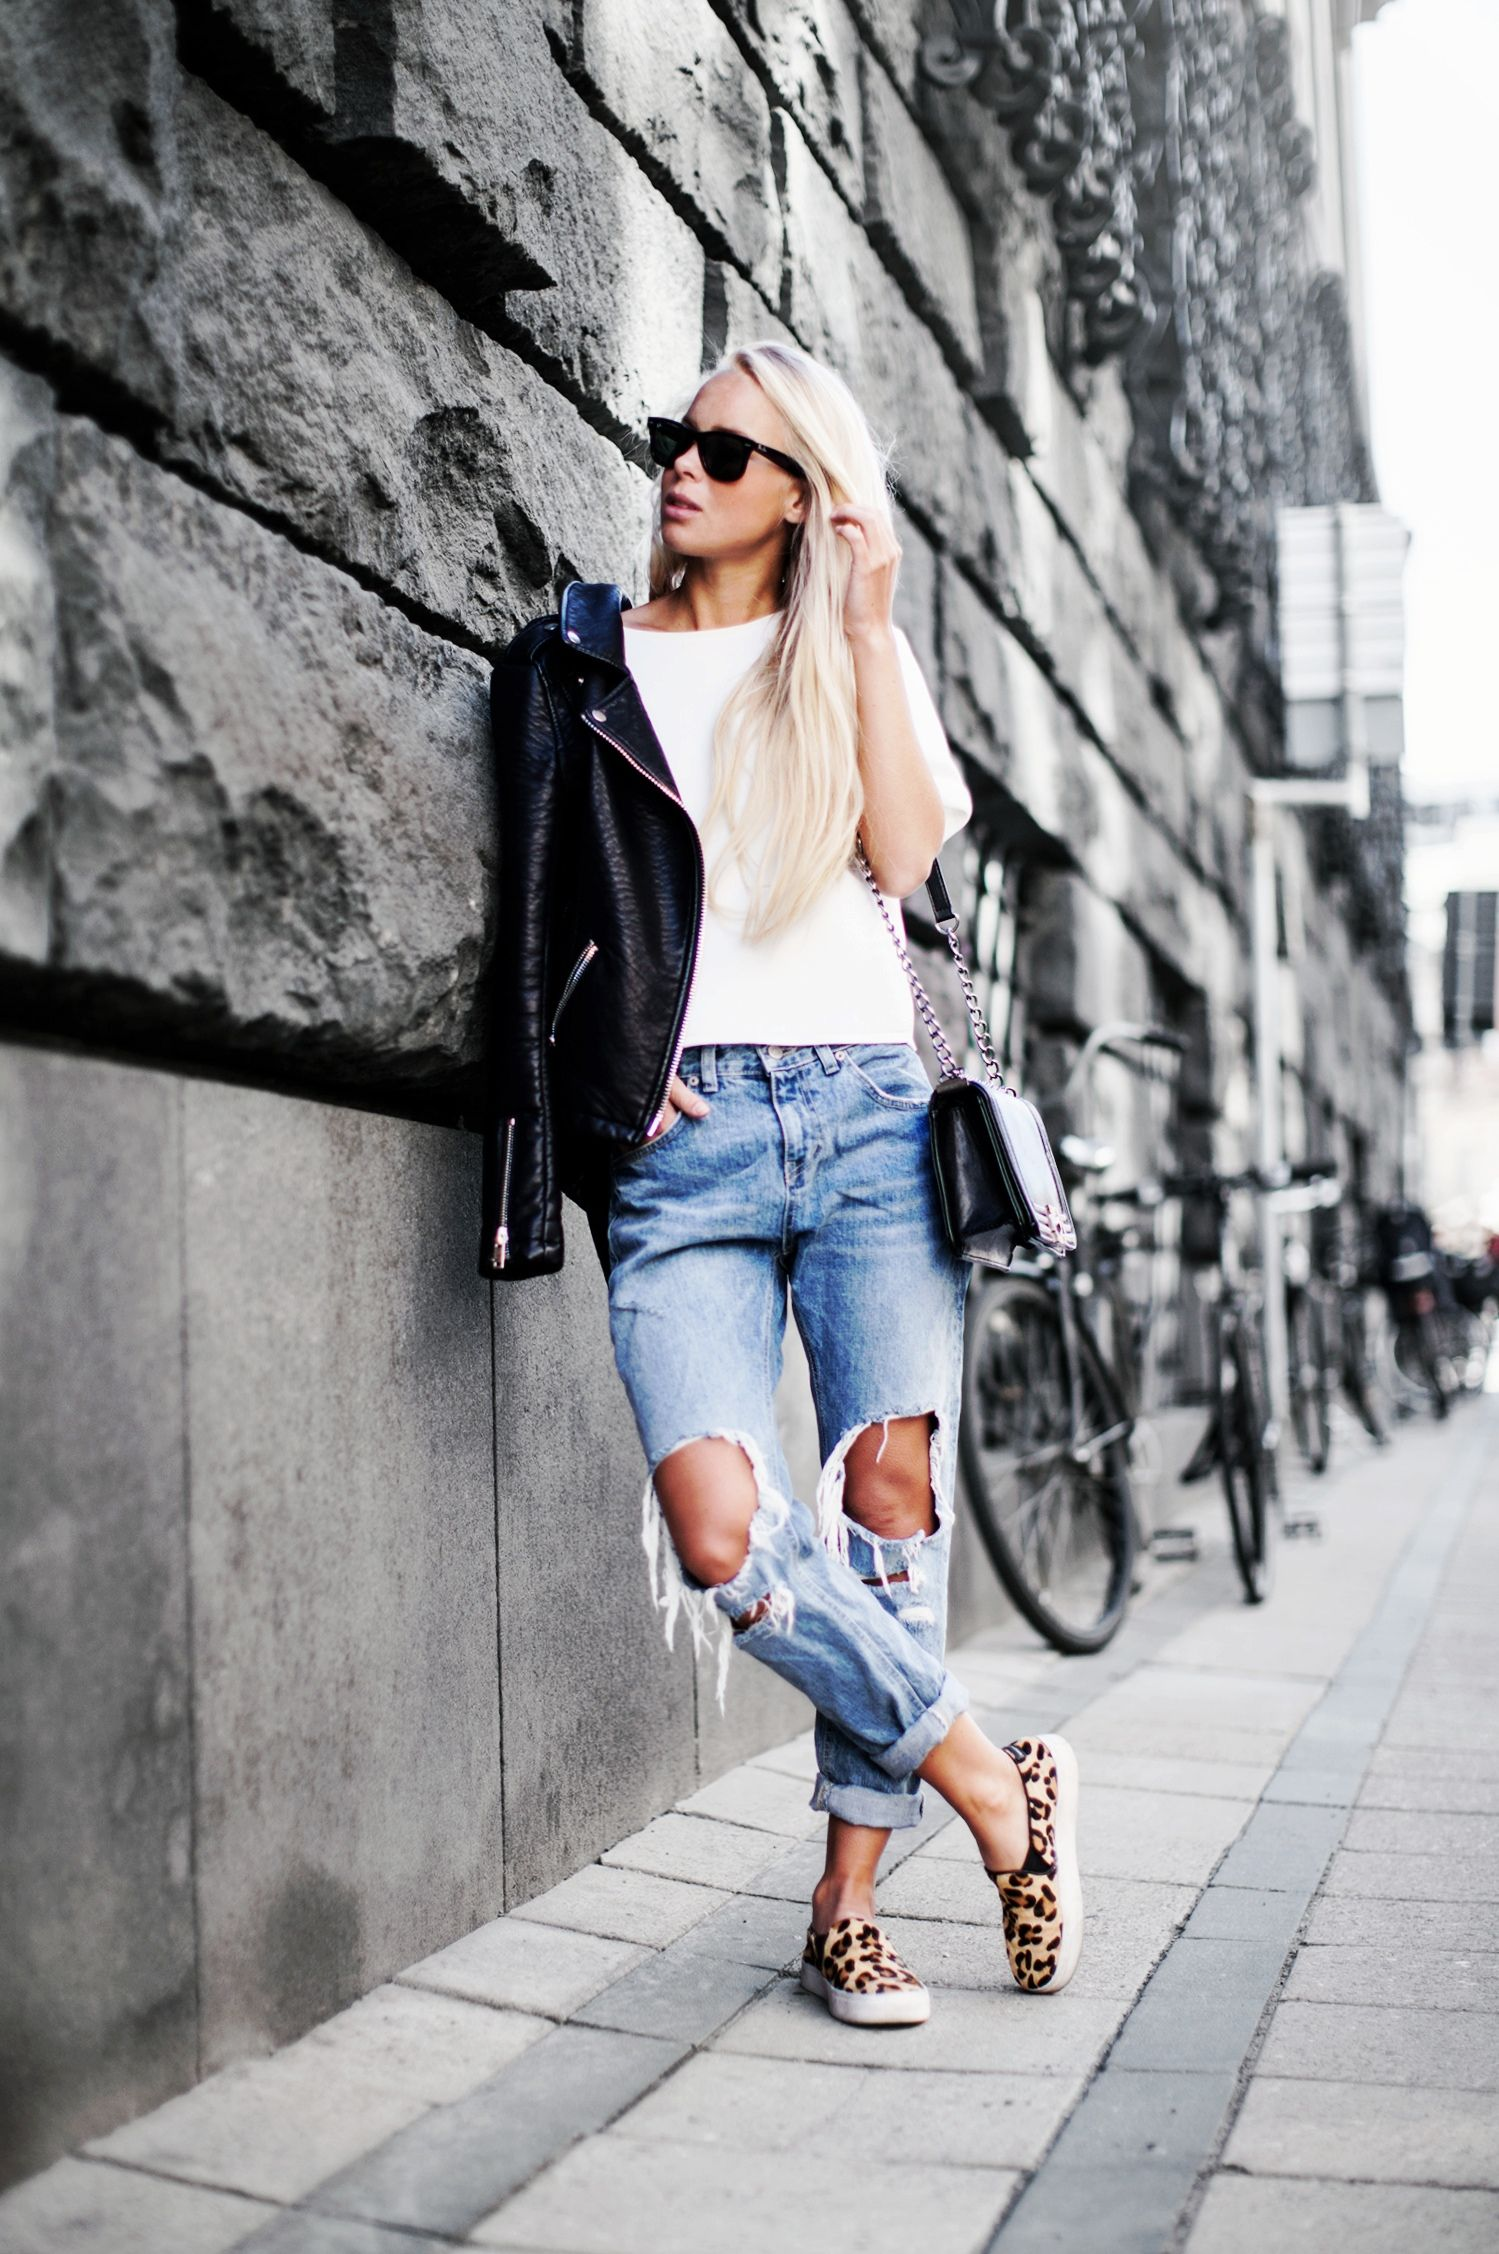 Biker Jacket + Ripped Jeans + Leopard Slip Ons http://imnext.se/victoriatornegren/todays-outfit-146/